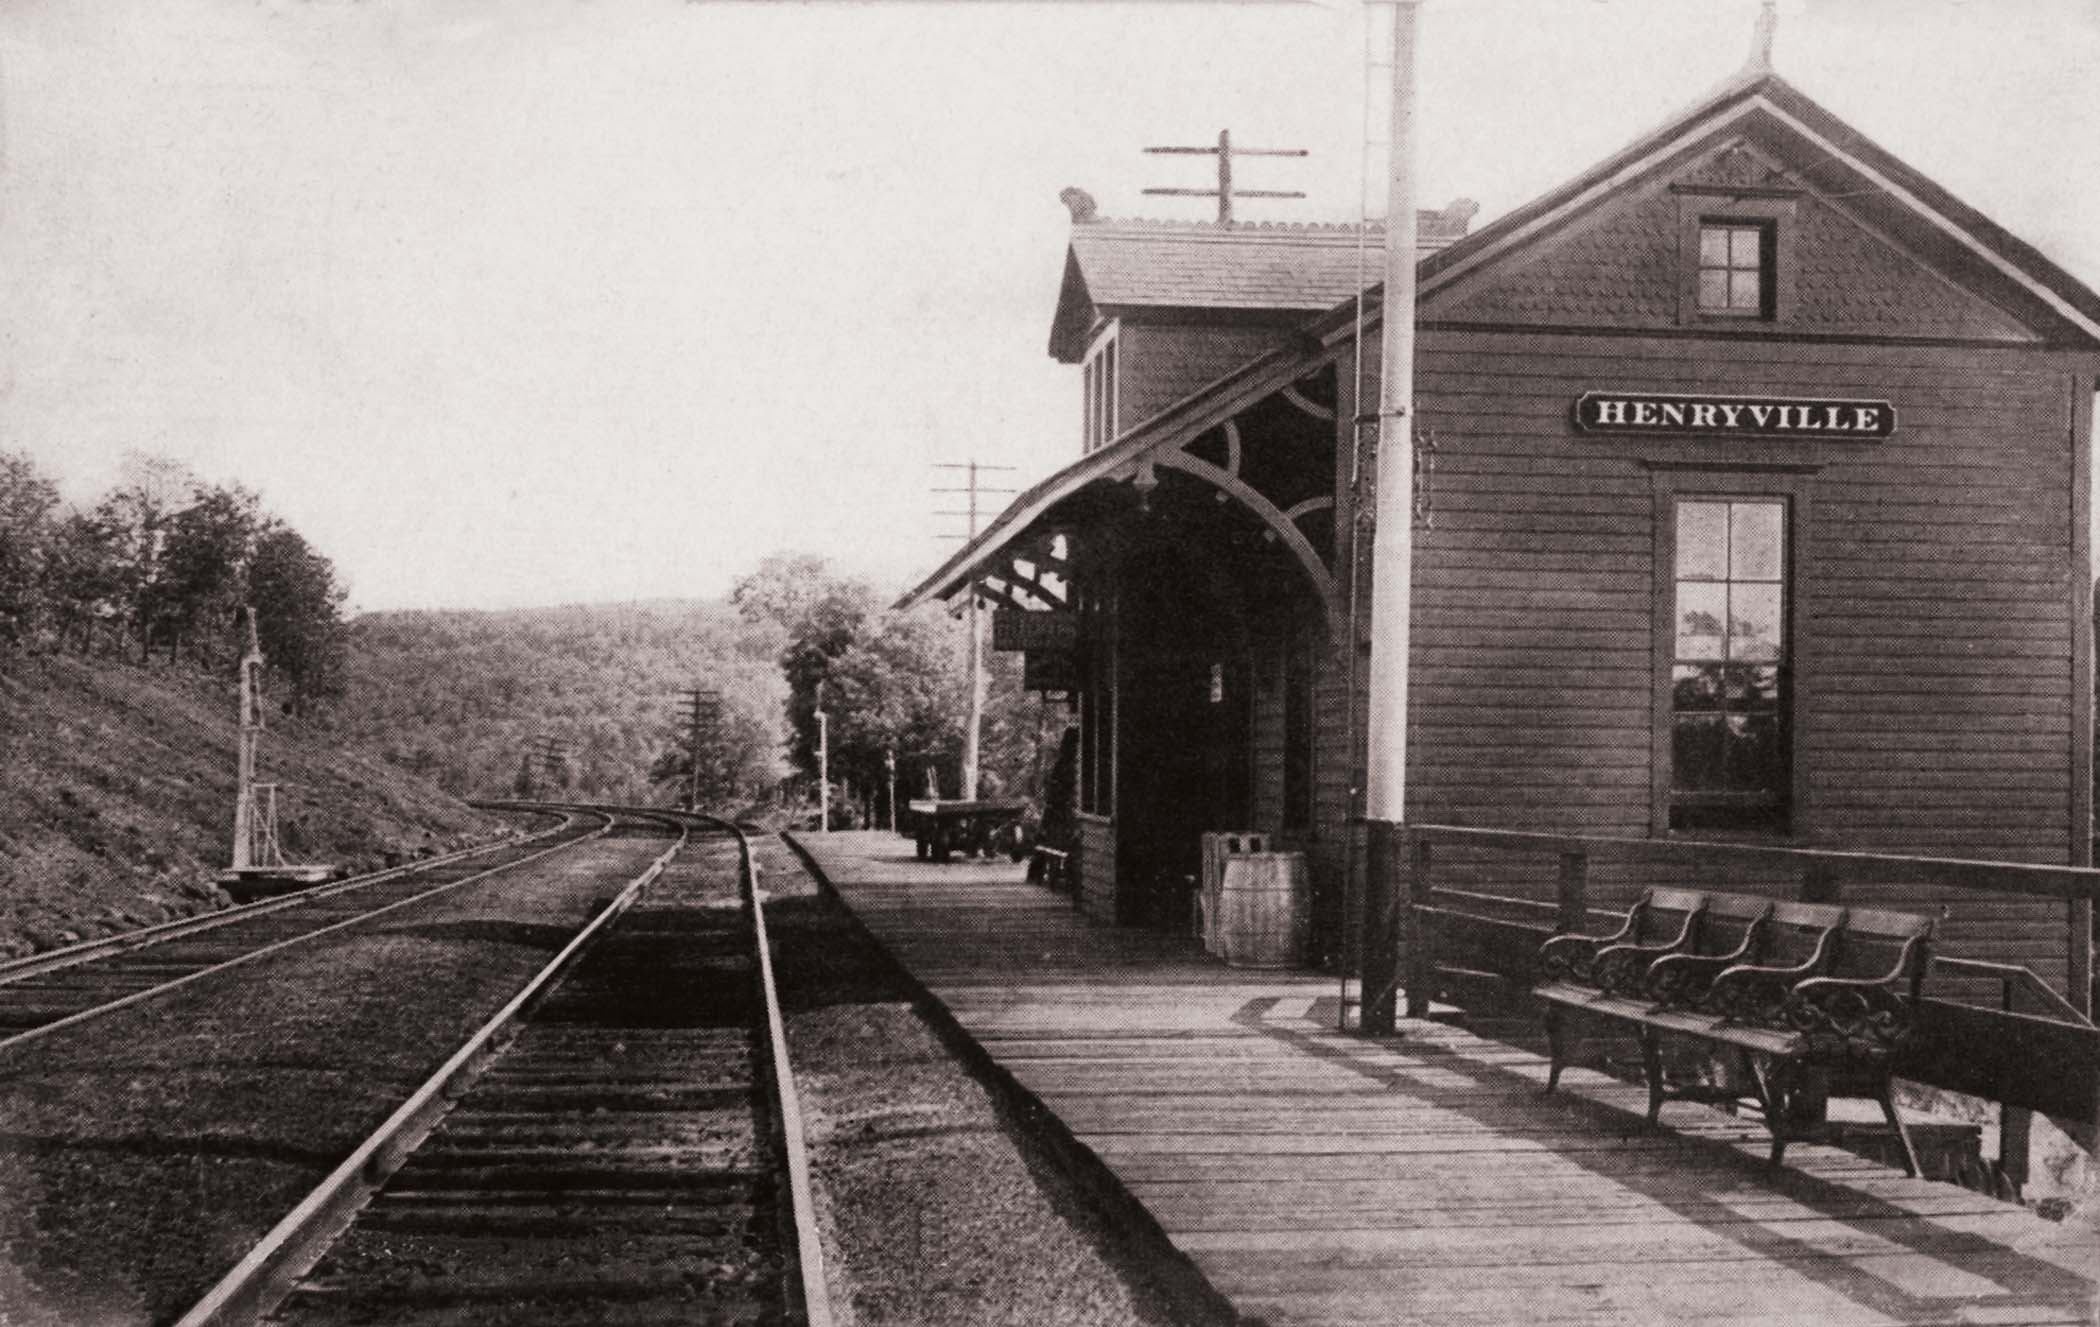 Henryville Railroad Station